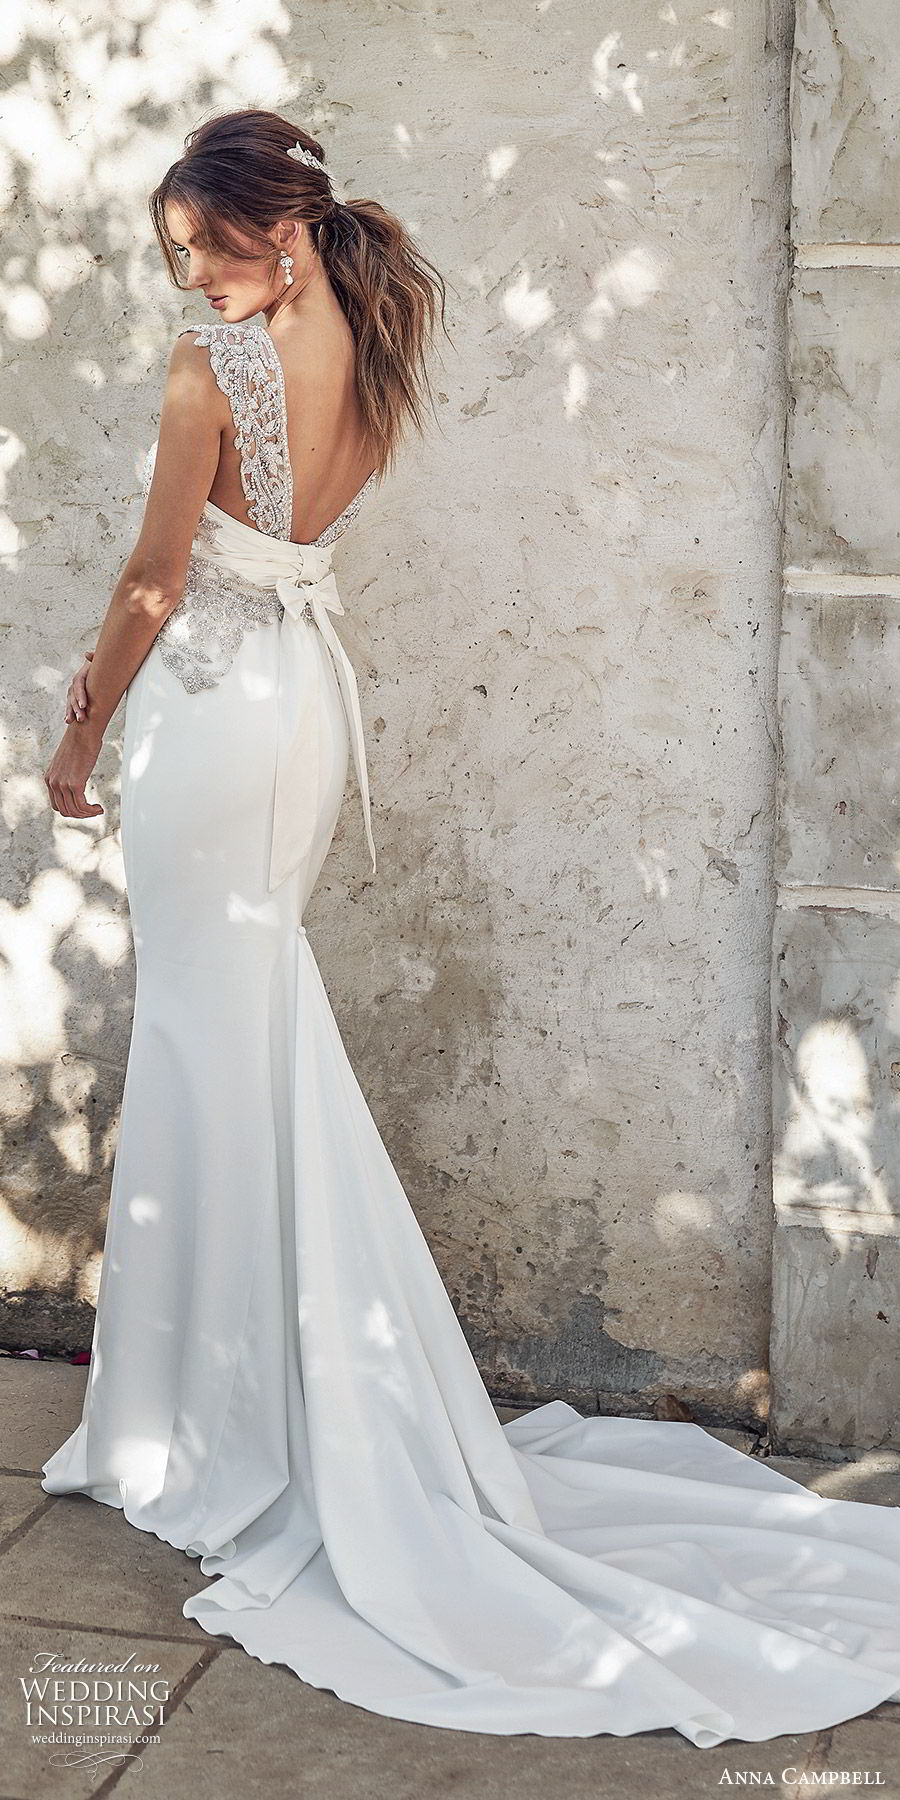 anna campbell 2020 bridal illusion cap sleeves scoop neck heavily embellished bodice trumpet mermaid sheath wedding dress (3) glitzy glam v back chapel train bv